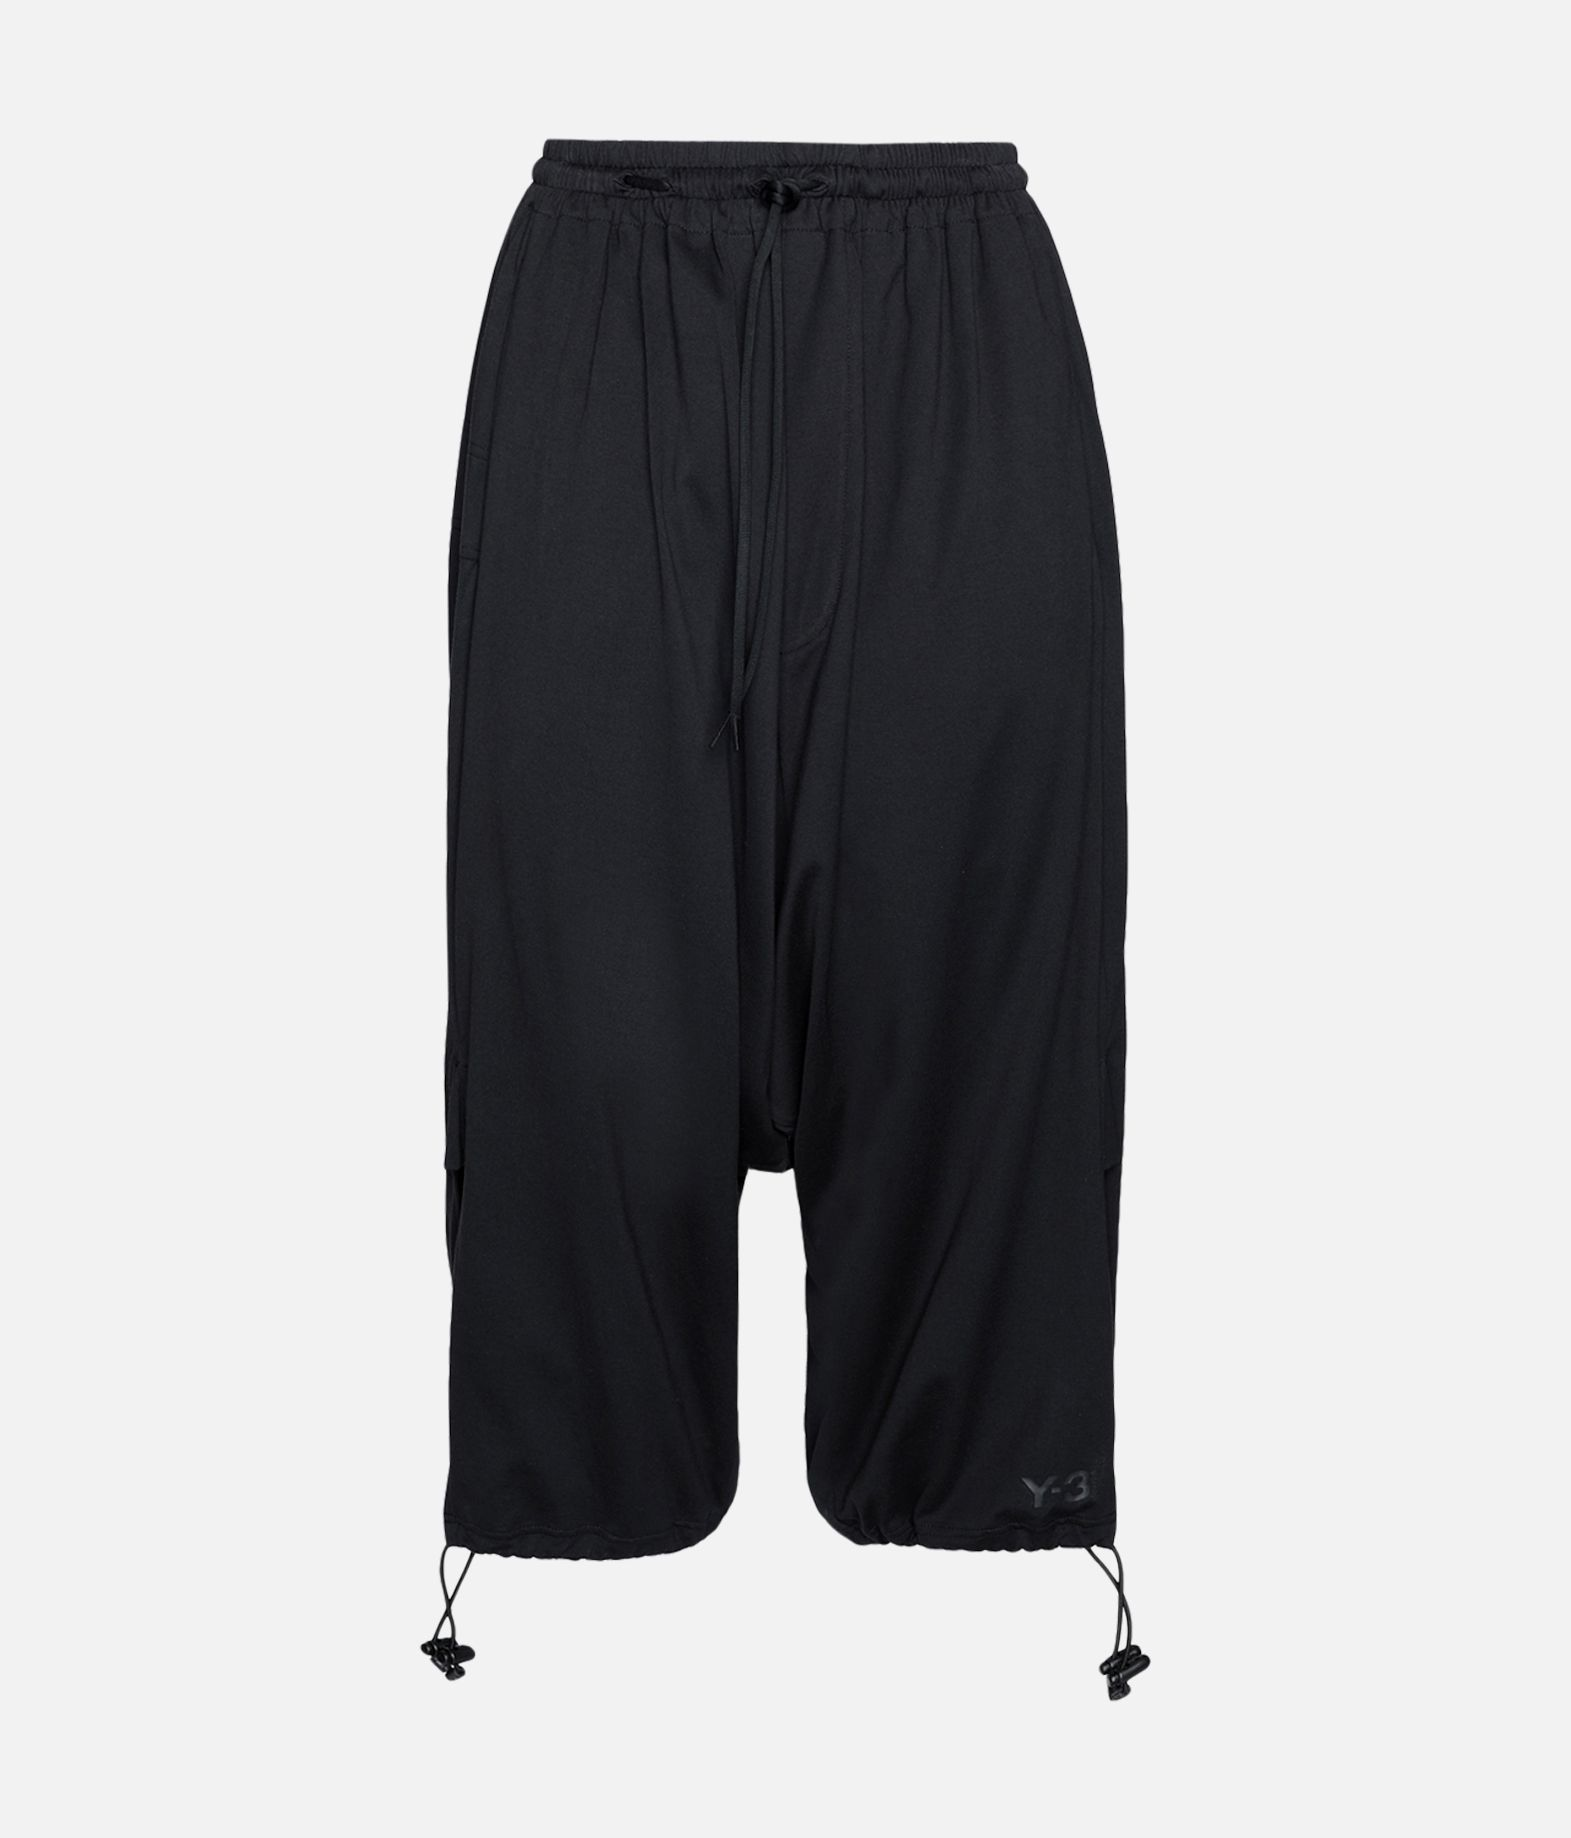 Y-3 Y-3 Drawstring 3/4 Pants  Cropped pant Woman f